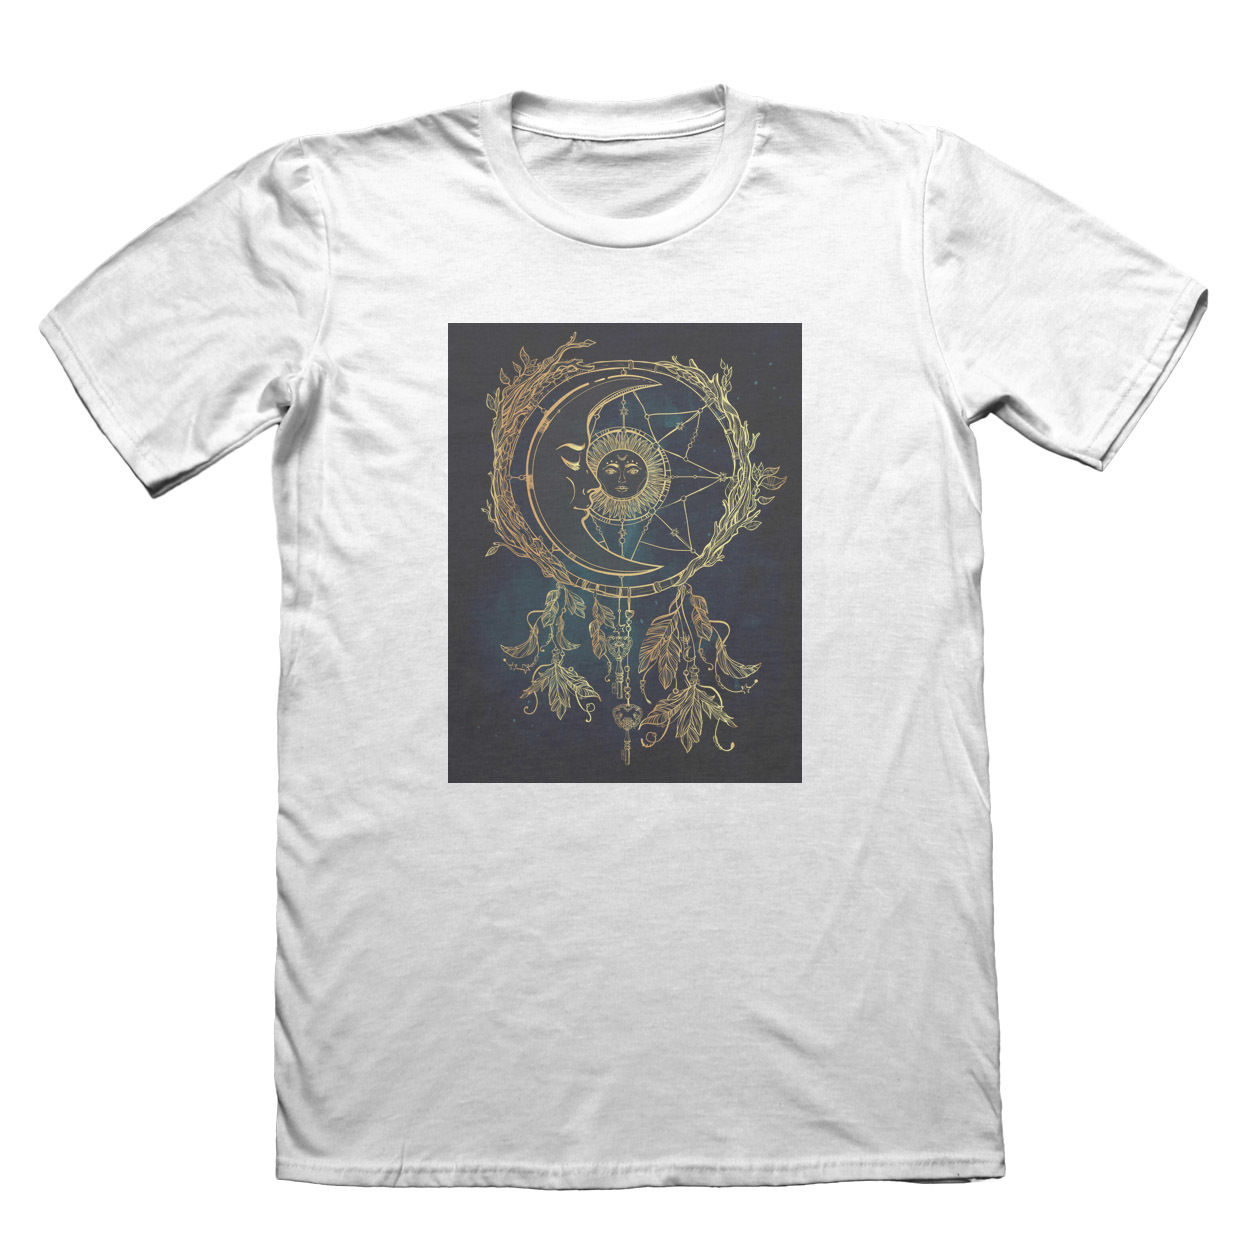 Sun Moon Dream Catcher T-Shirt - Mens Fathers Day Christmas Gift #7418